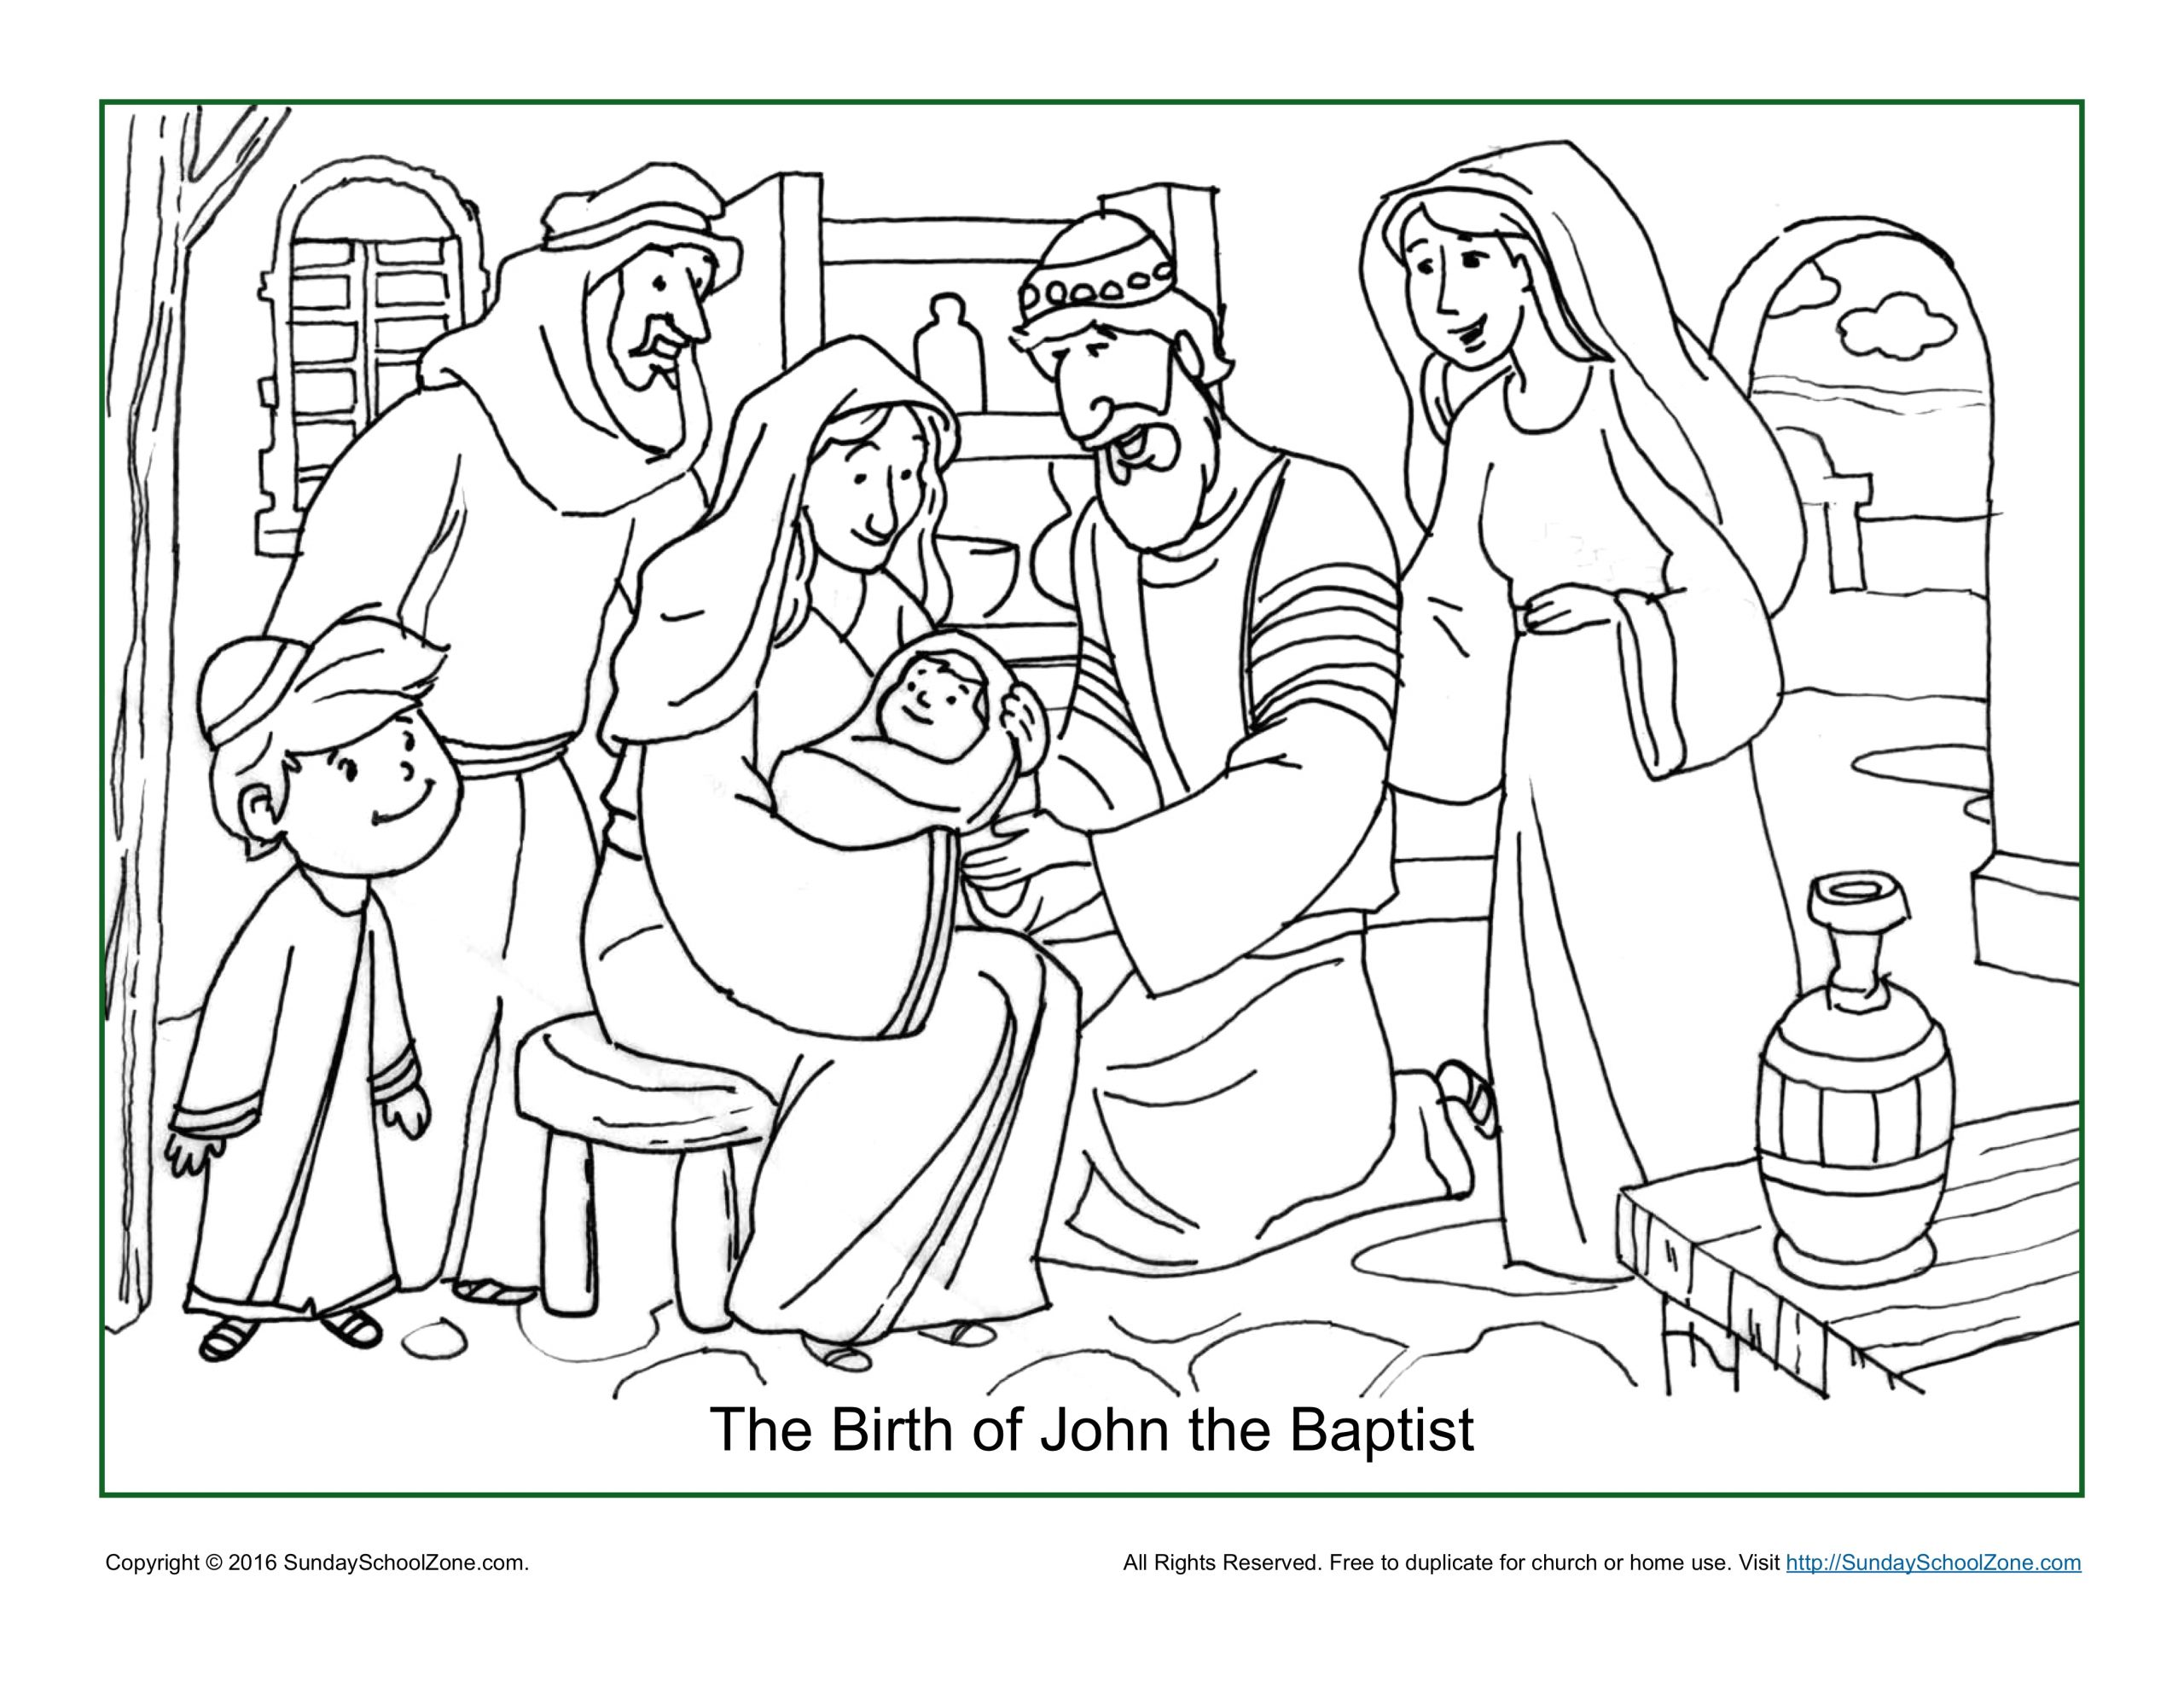 Birth Of John the Baptist Coloring Page the Birth Of John the Baptist Coloring Page Children S